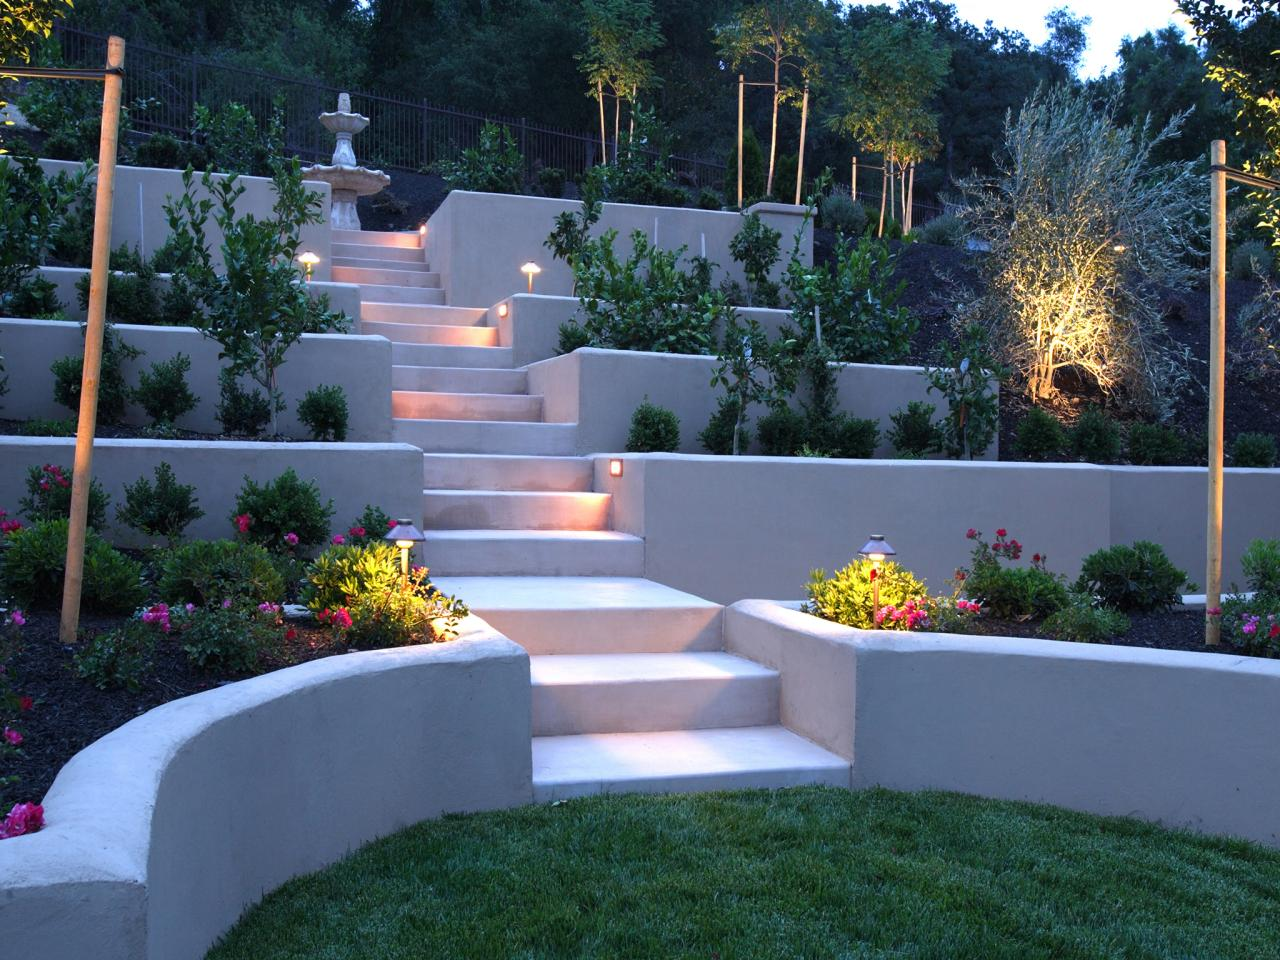 Hardscape design-Sarasota FL Landscape Designs & Outdoor Living Areas-We offer Landscape Design, Outdoor Patios & Pergolas, Outdoor Living Spaces, Stonescapes, Residential & Commercial Landscaping, Irrigation Installation & Repairs, Drainage Systems, Landscape Lighting, Outdoor Living Spaces, Tree Service, Lawn Service, and more.